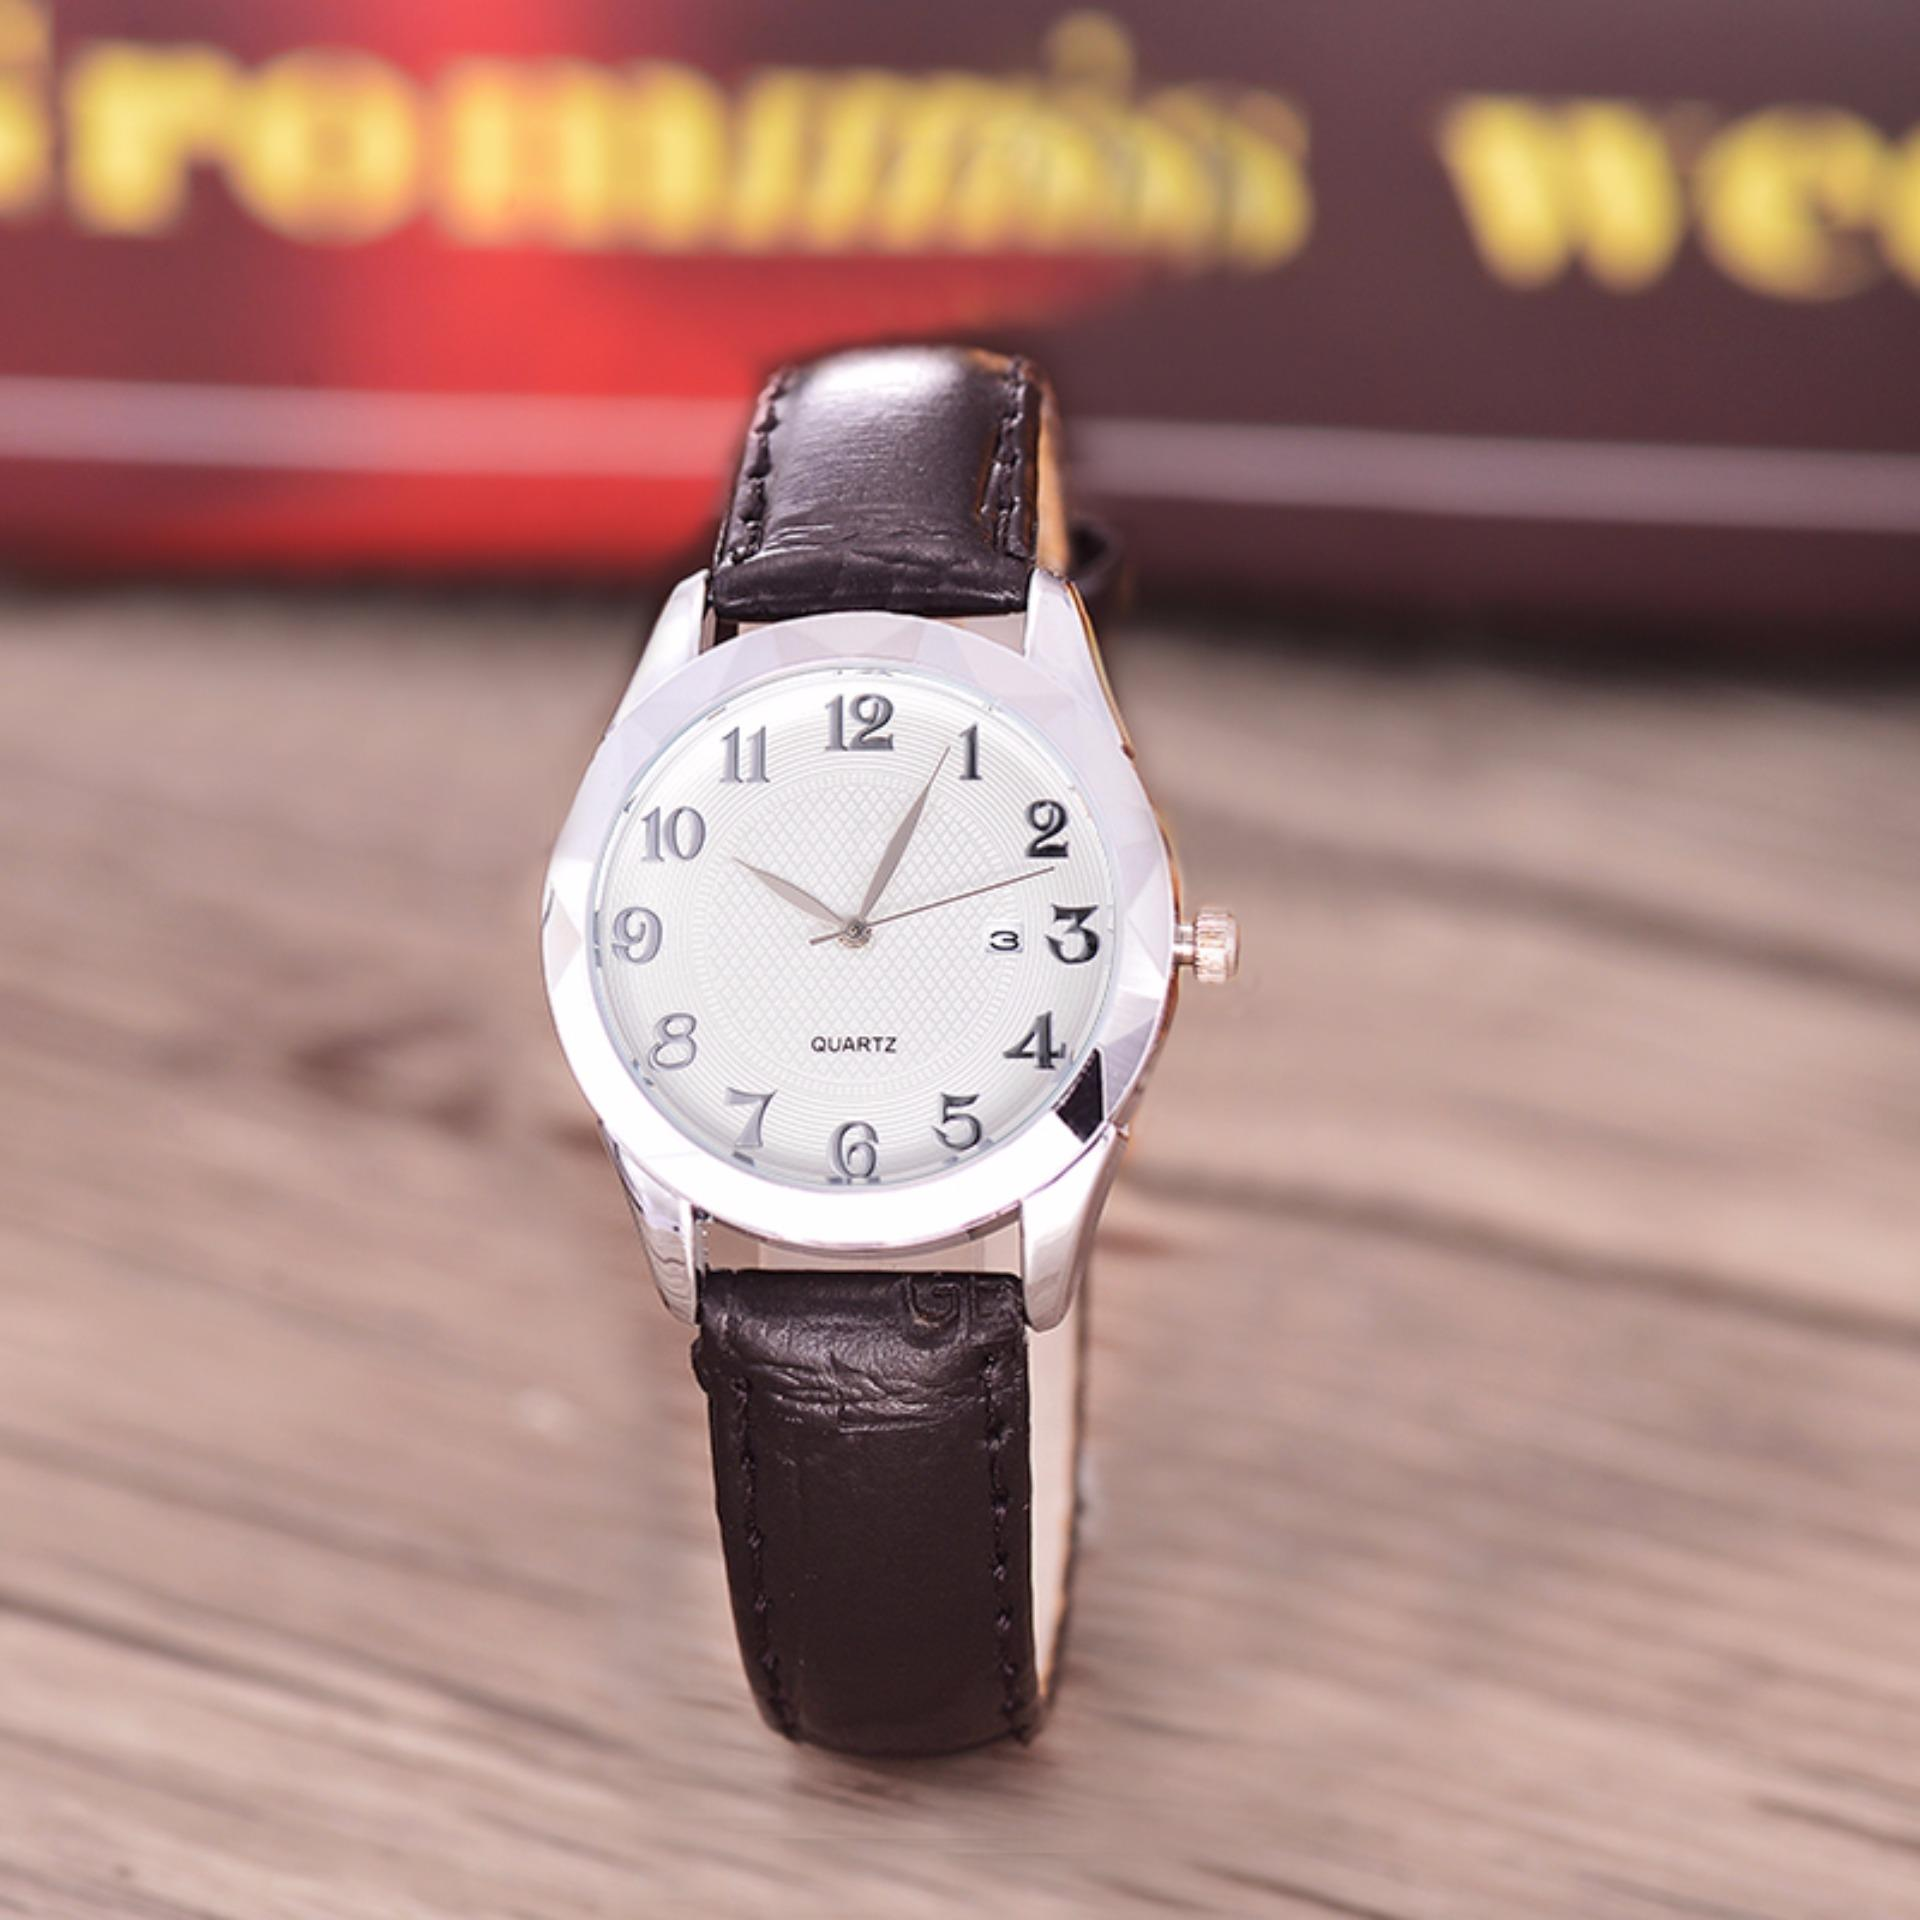 Penawaran Istimewa Costie Land Jam Tangan Wanita Body Silver White Dial Costie Land Cl 5501A L Sw Tgl Silver Black Leather Terbaru